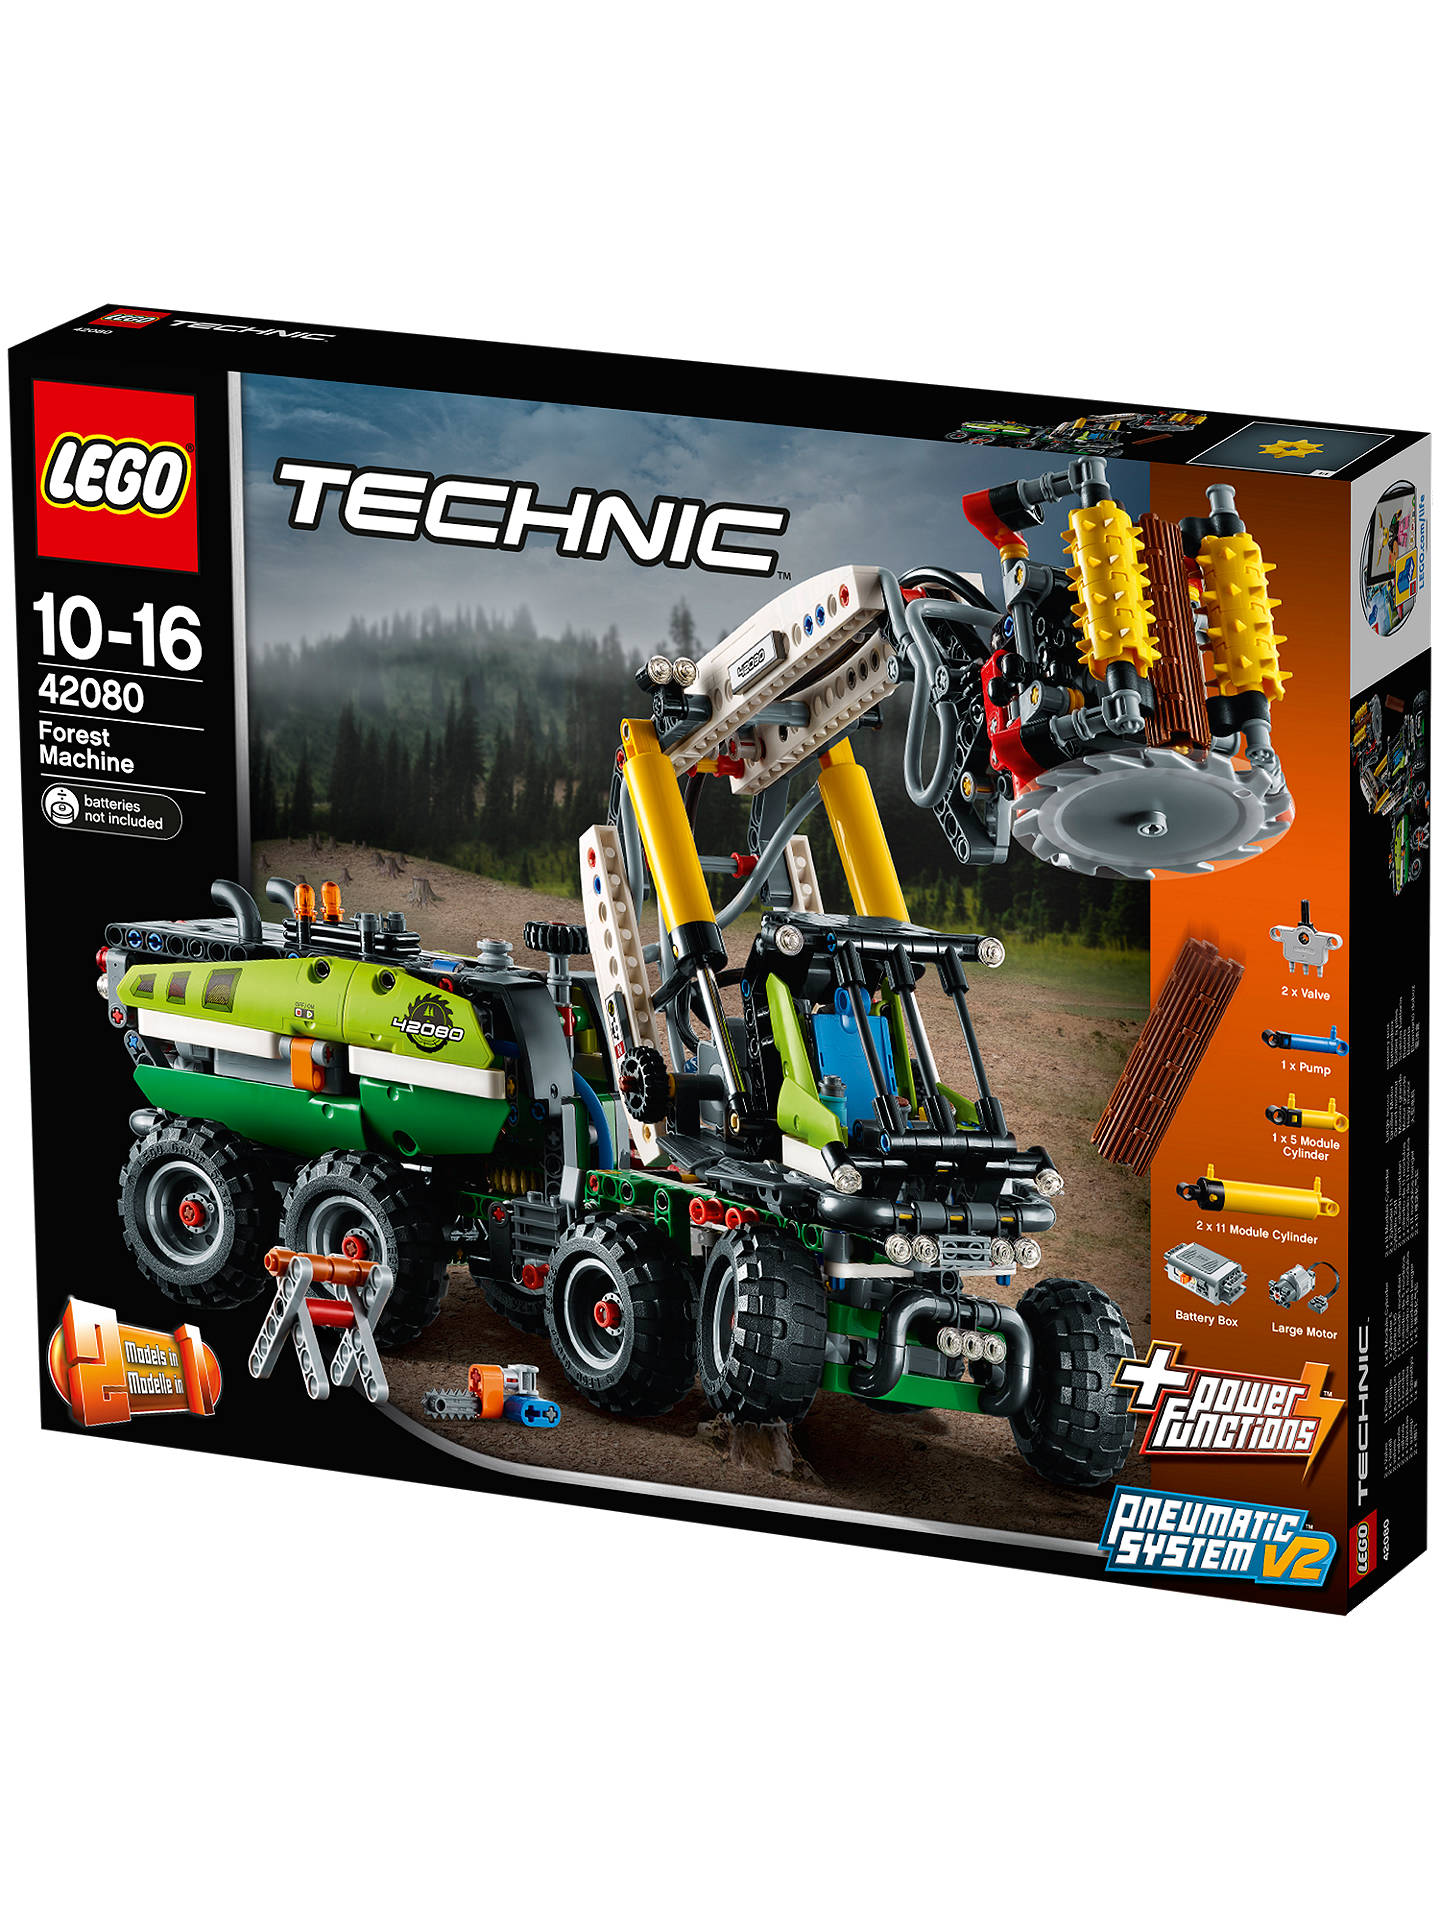 Lego Technic 42080 2 In 1 Forest Machine Online At Johnlewis